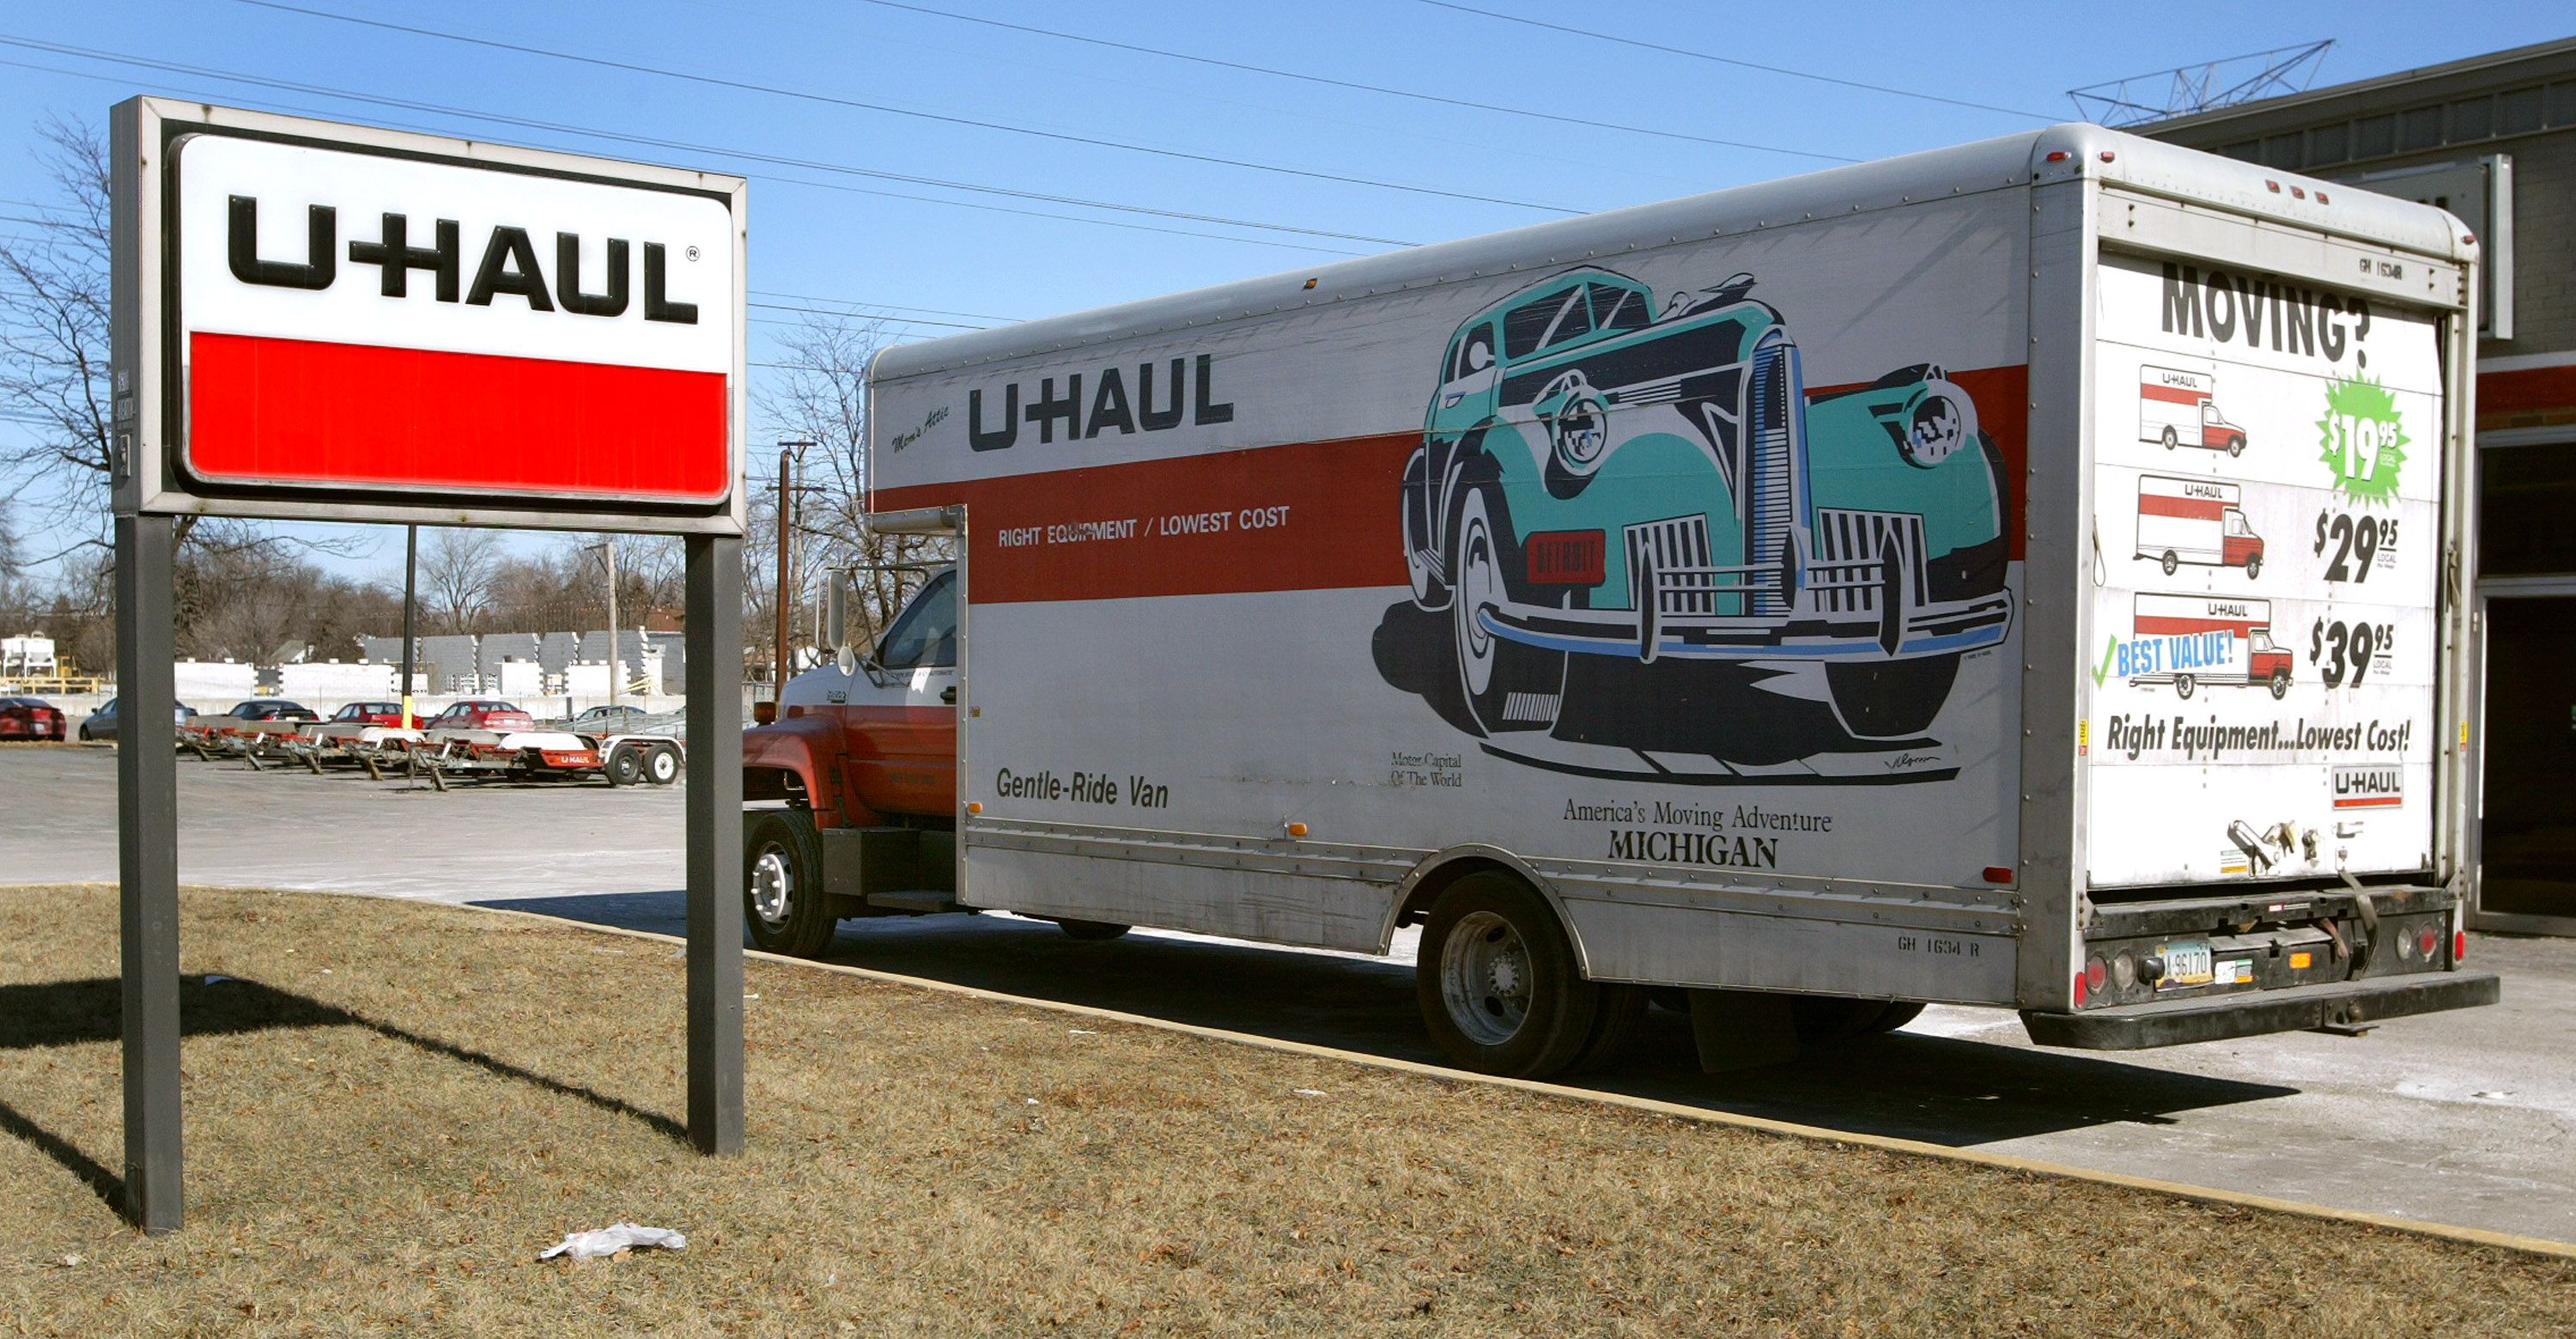 U Haul Just Announced An Amazing Deal For Those Affected By